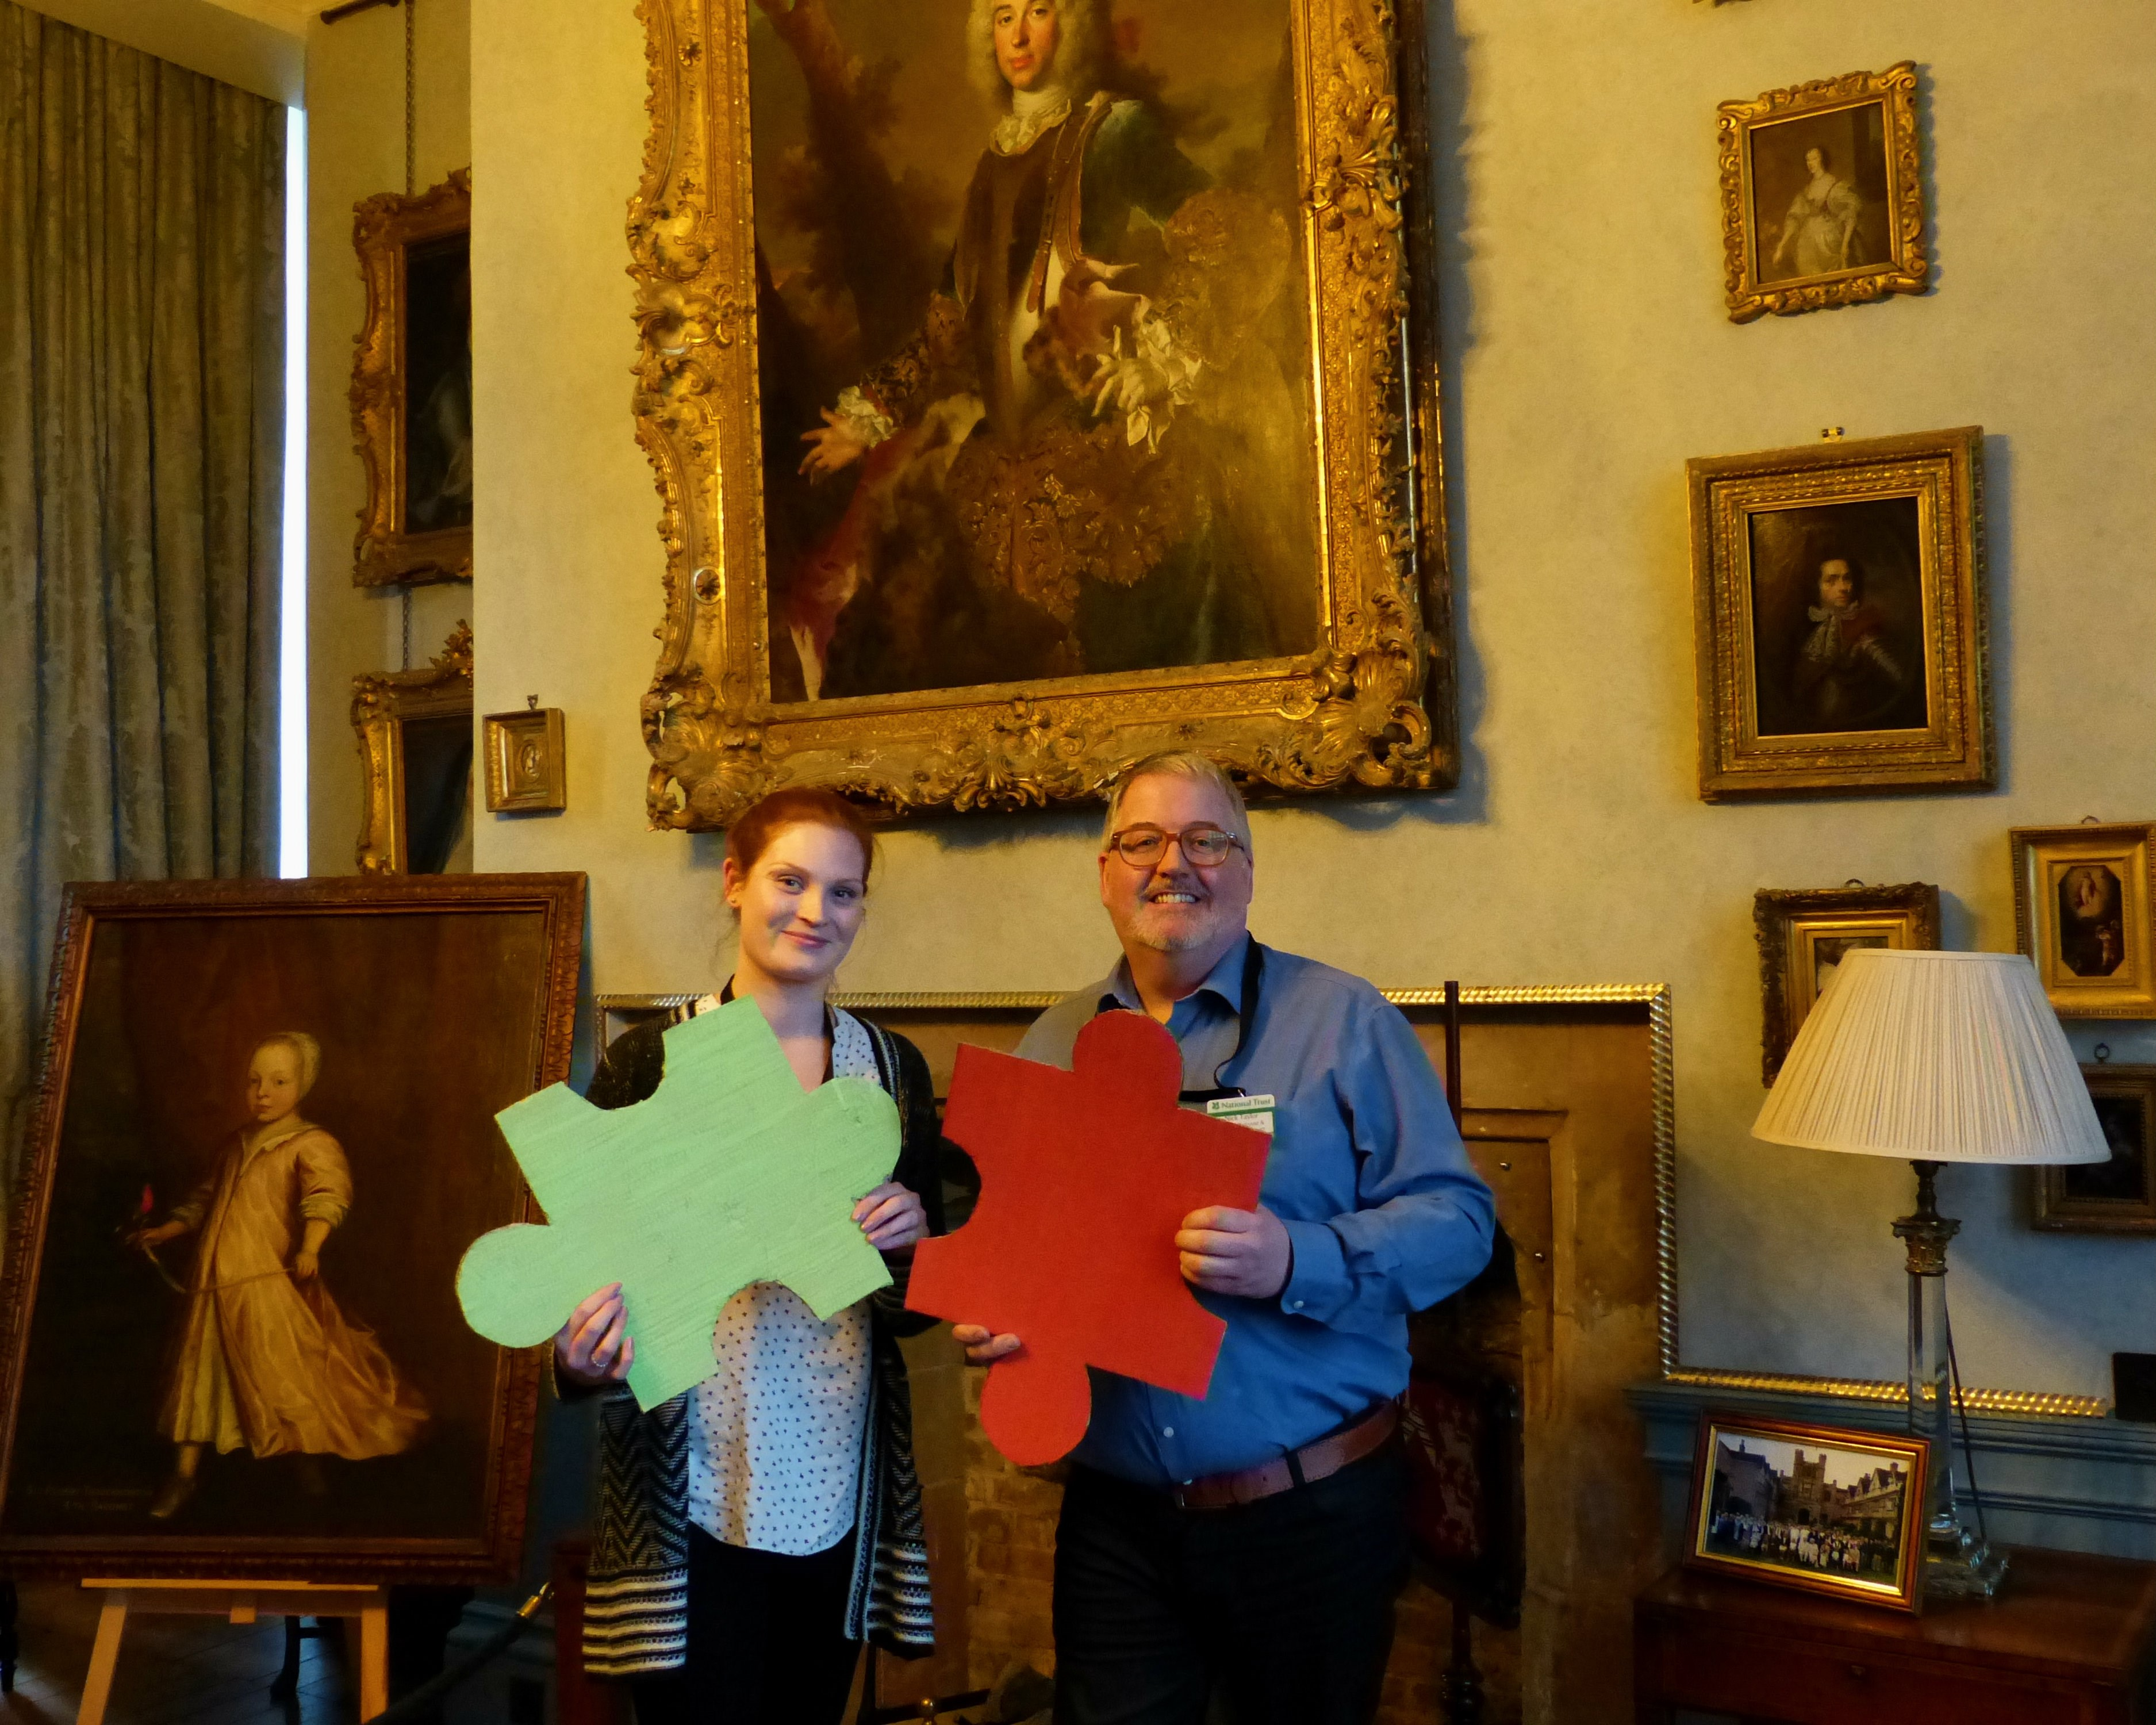 Jigsaw Festival returns to Coughton Court